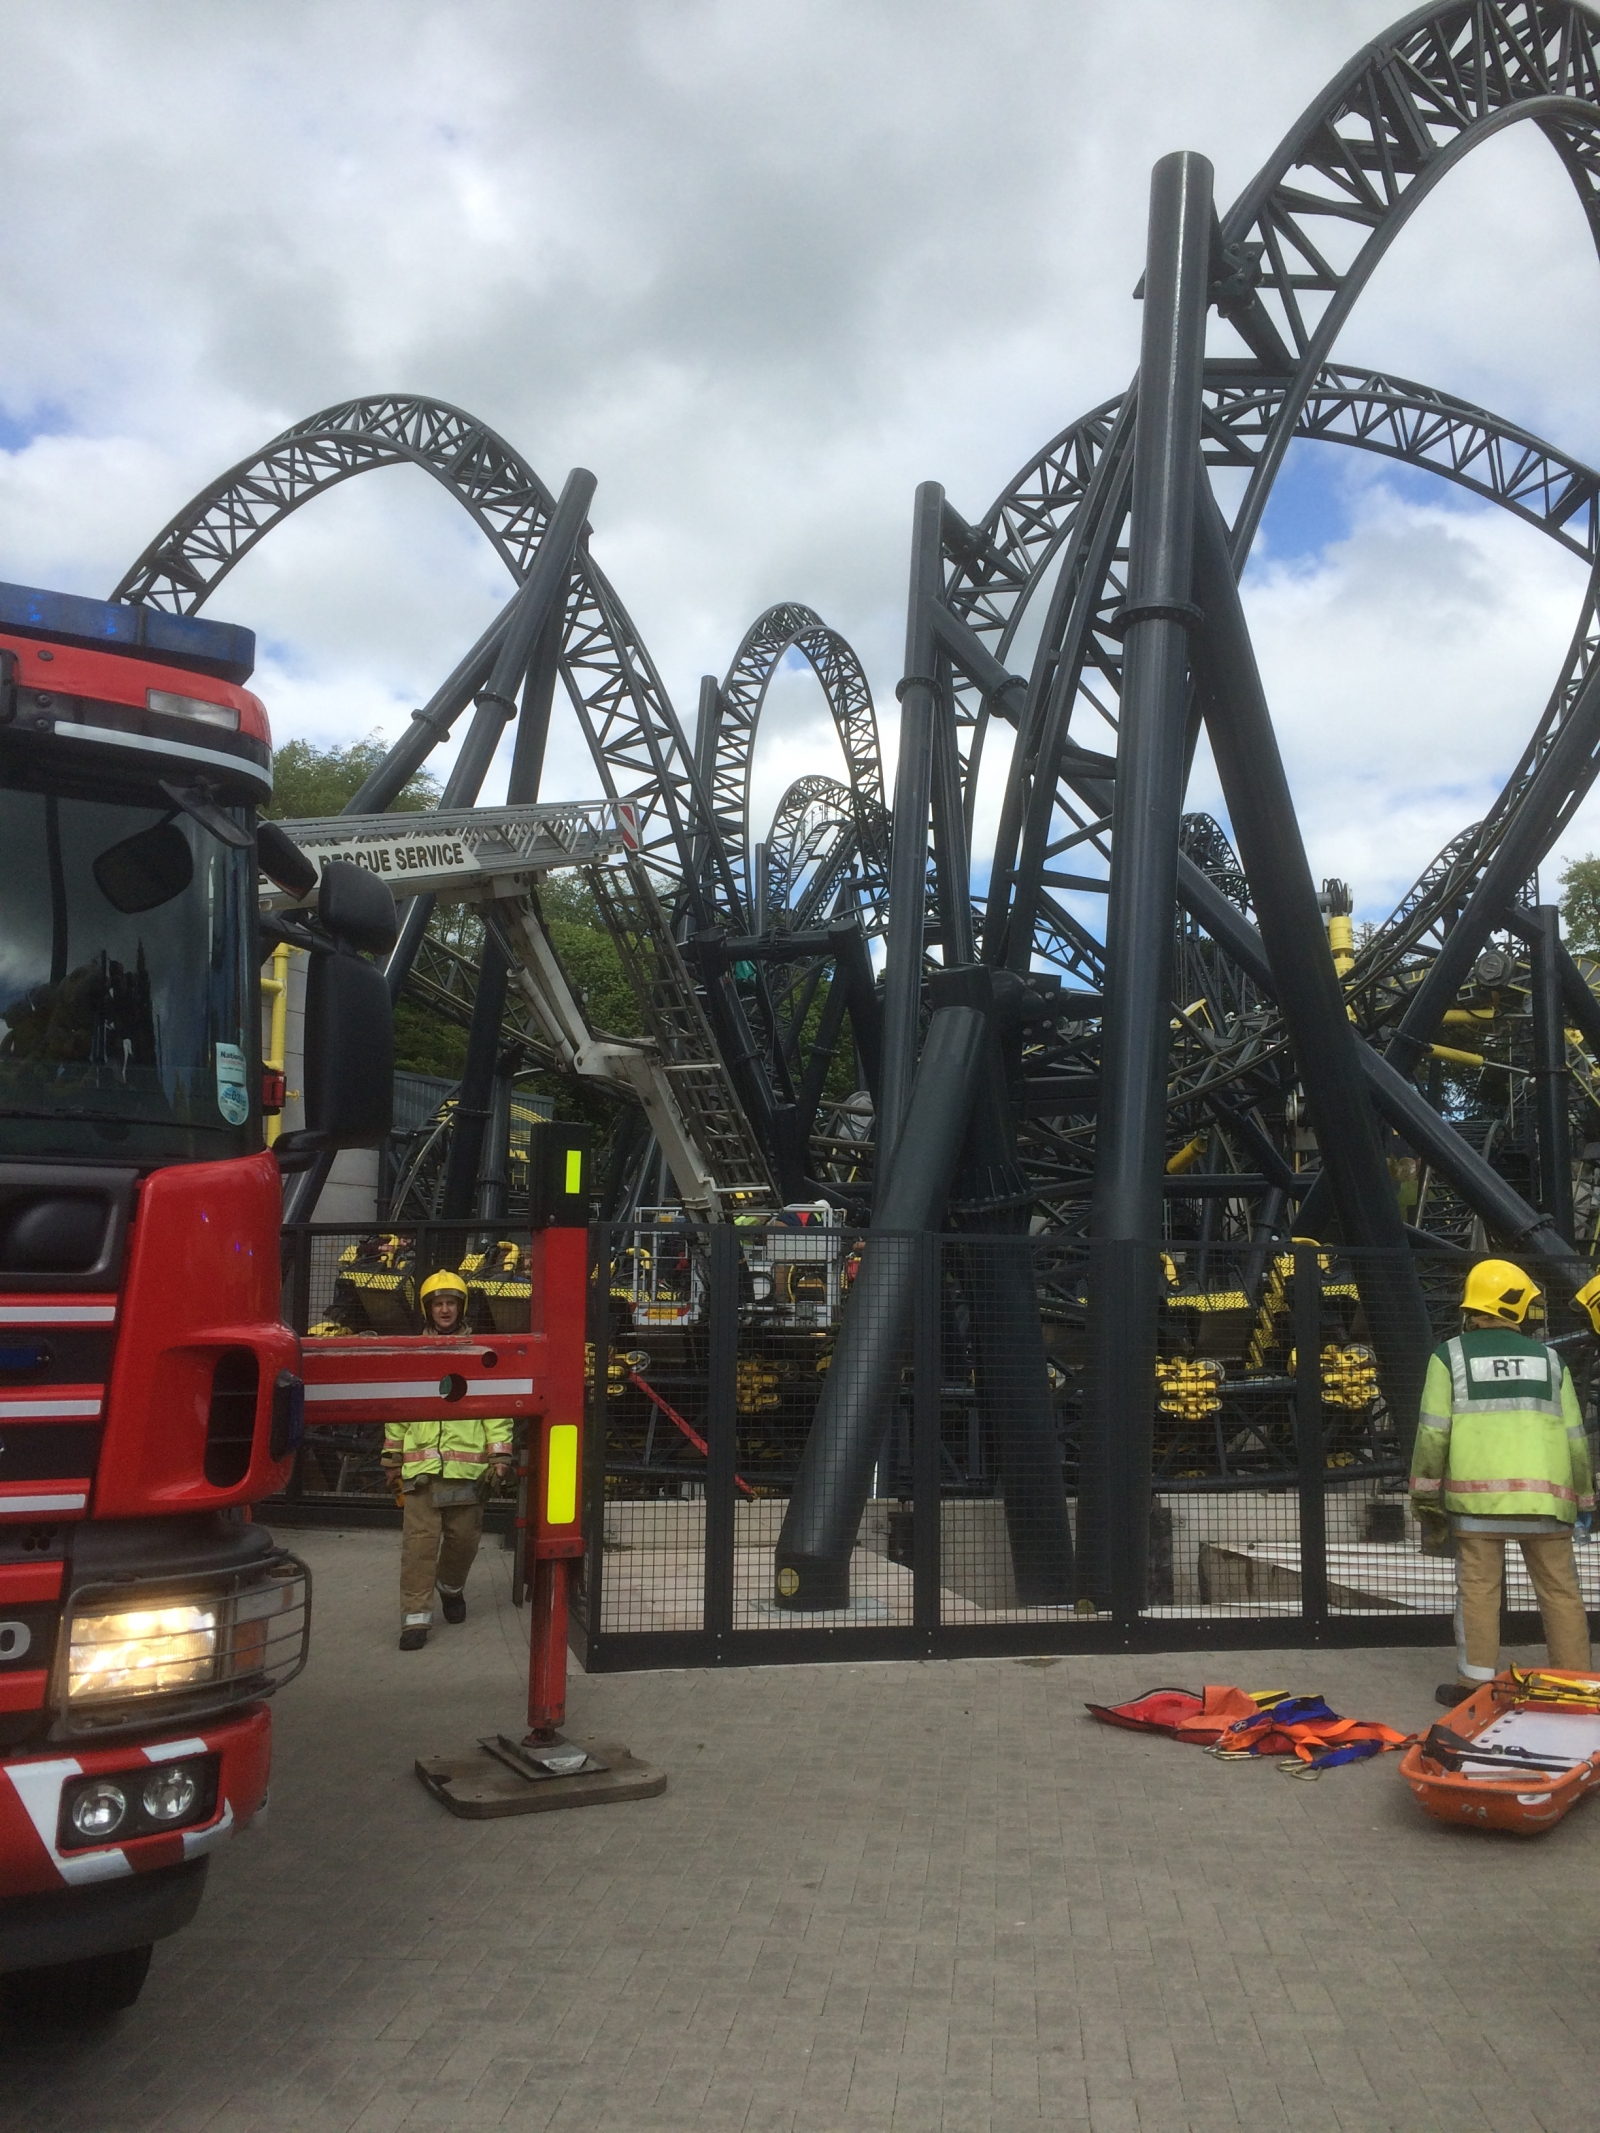 The Smiler Alton Towers